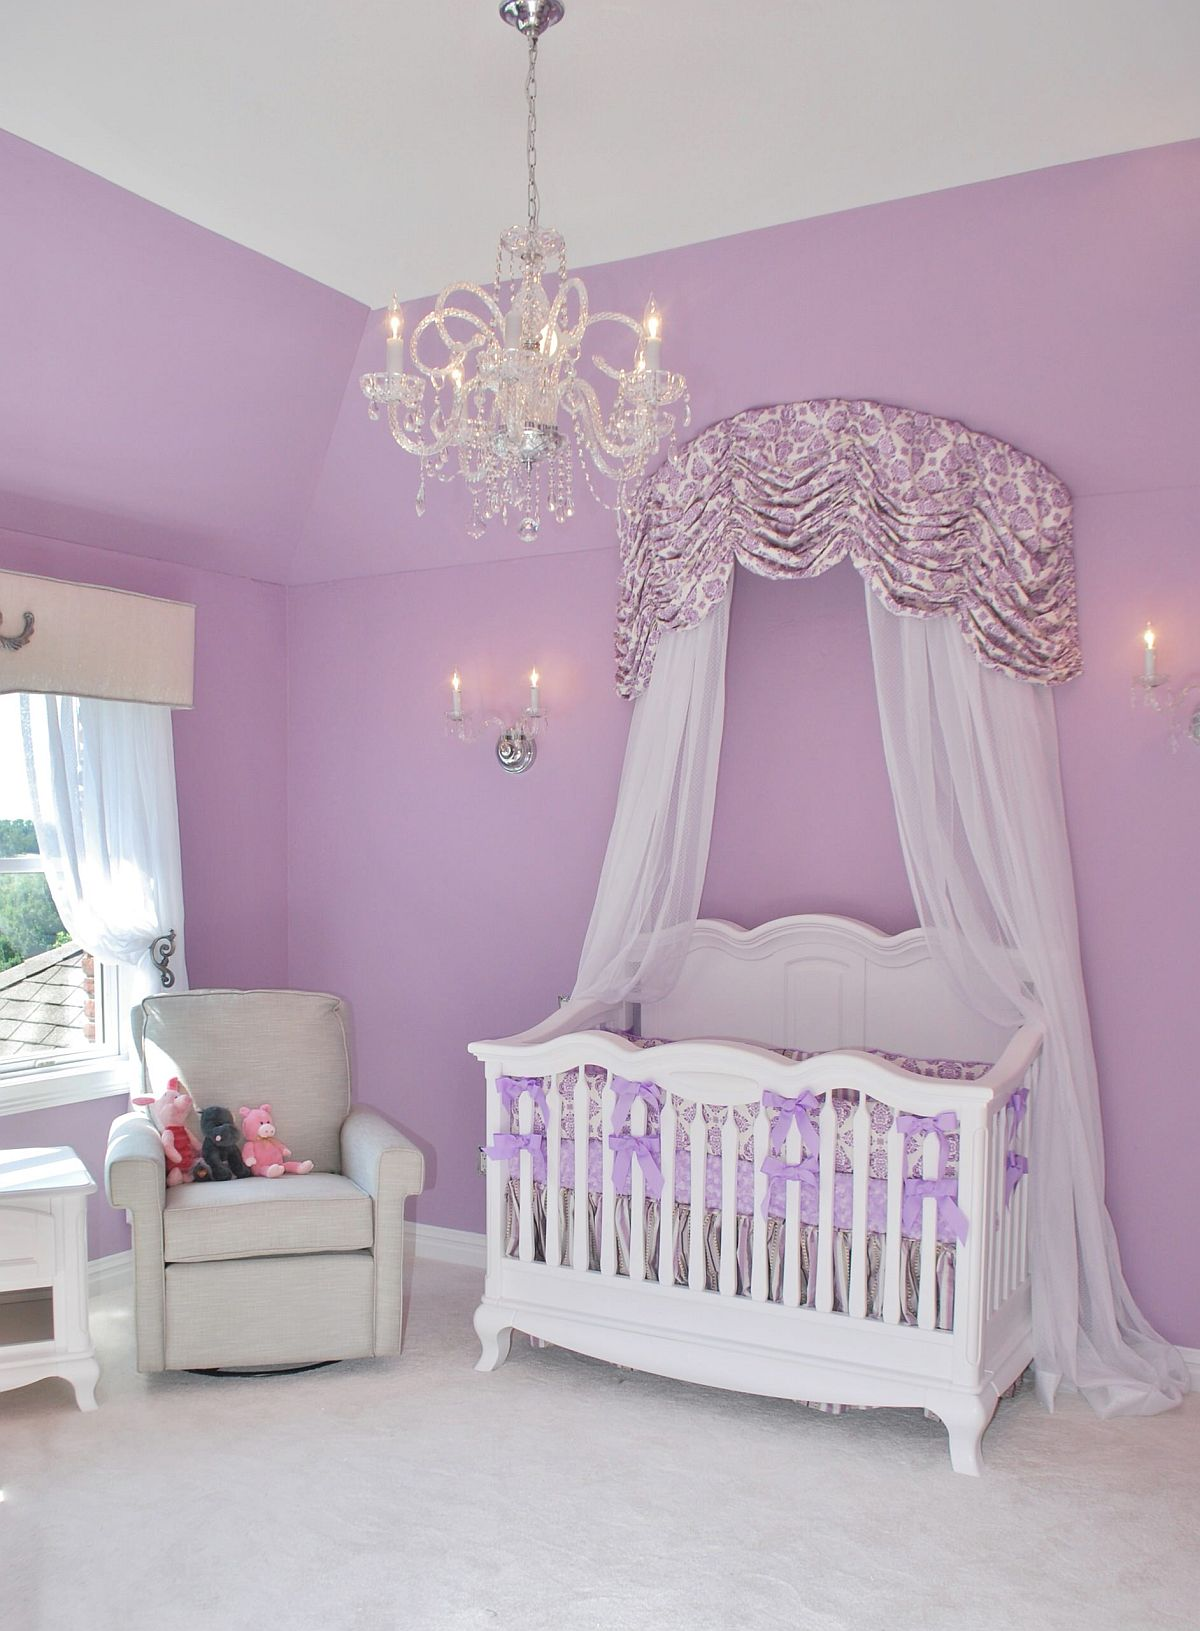 Stunningly-beautiful-nursery-in-violet-that-is-picture-perfect-for-your-little-princess-52067